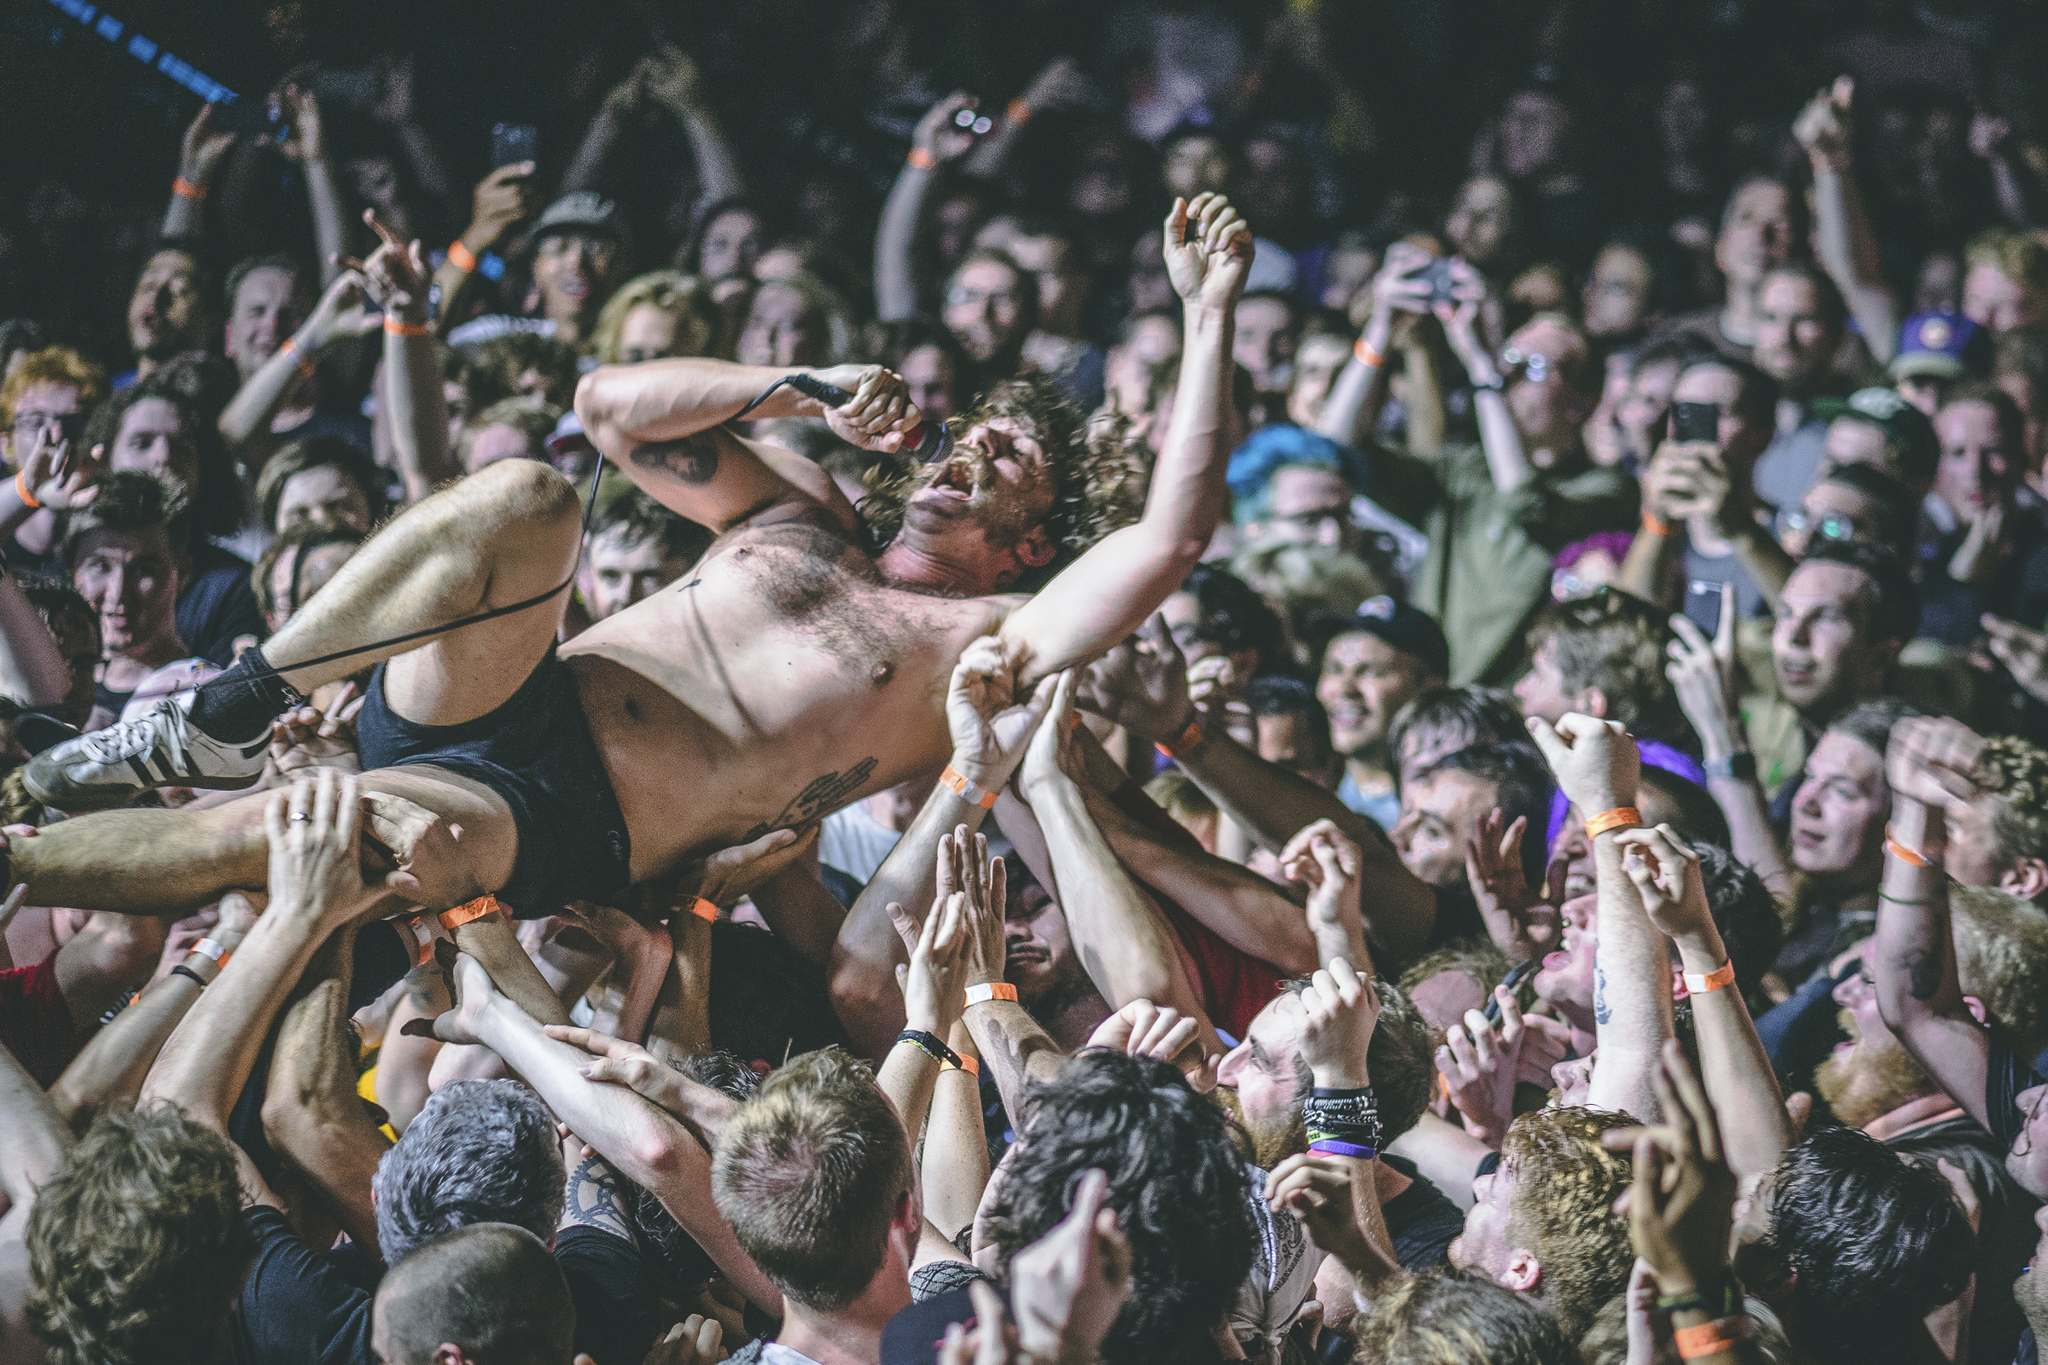 Mark Bowen, guitarist for the British punk group IDLES, surfs across the crowd during the band's performance at First Avenue in Minneapolis, MN. in 2019. (Mat Kleisinger photo)</p>